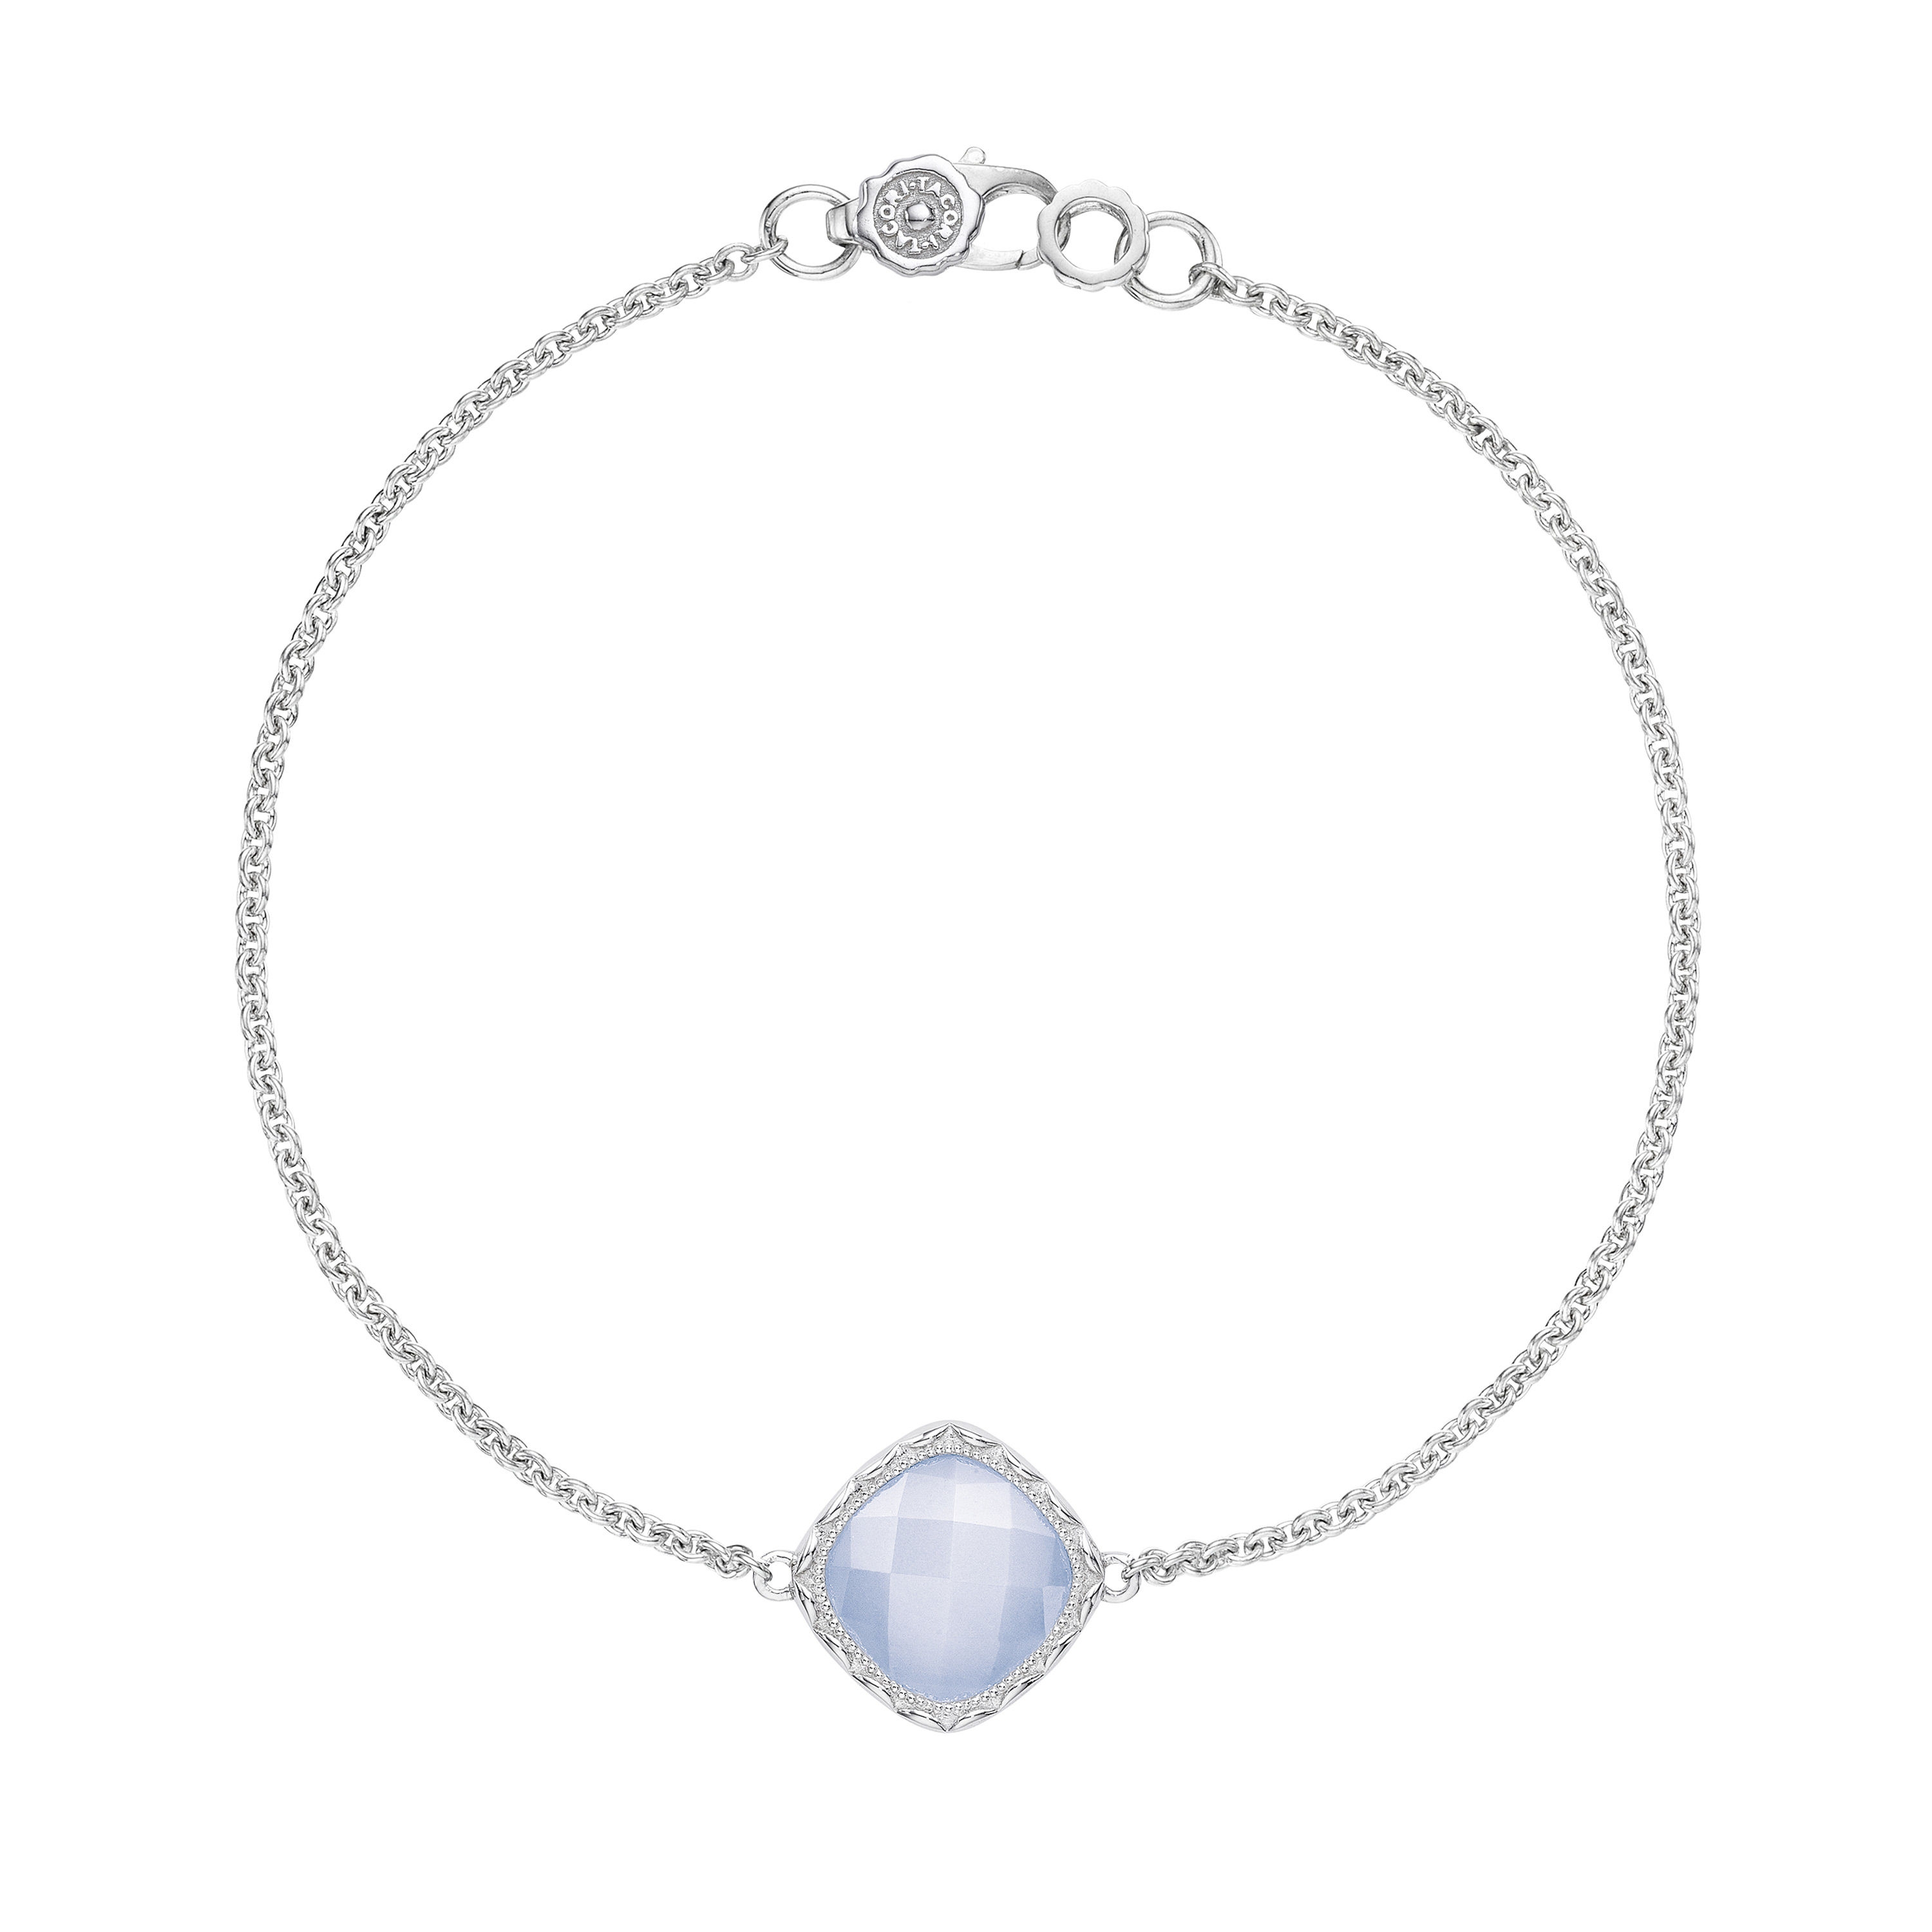 SB22303 Tacori Solitaire Cushion Gem Bracelet with Chalcedony